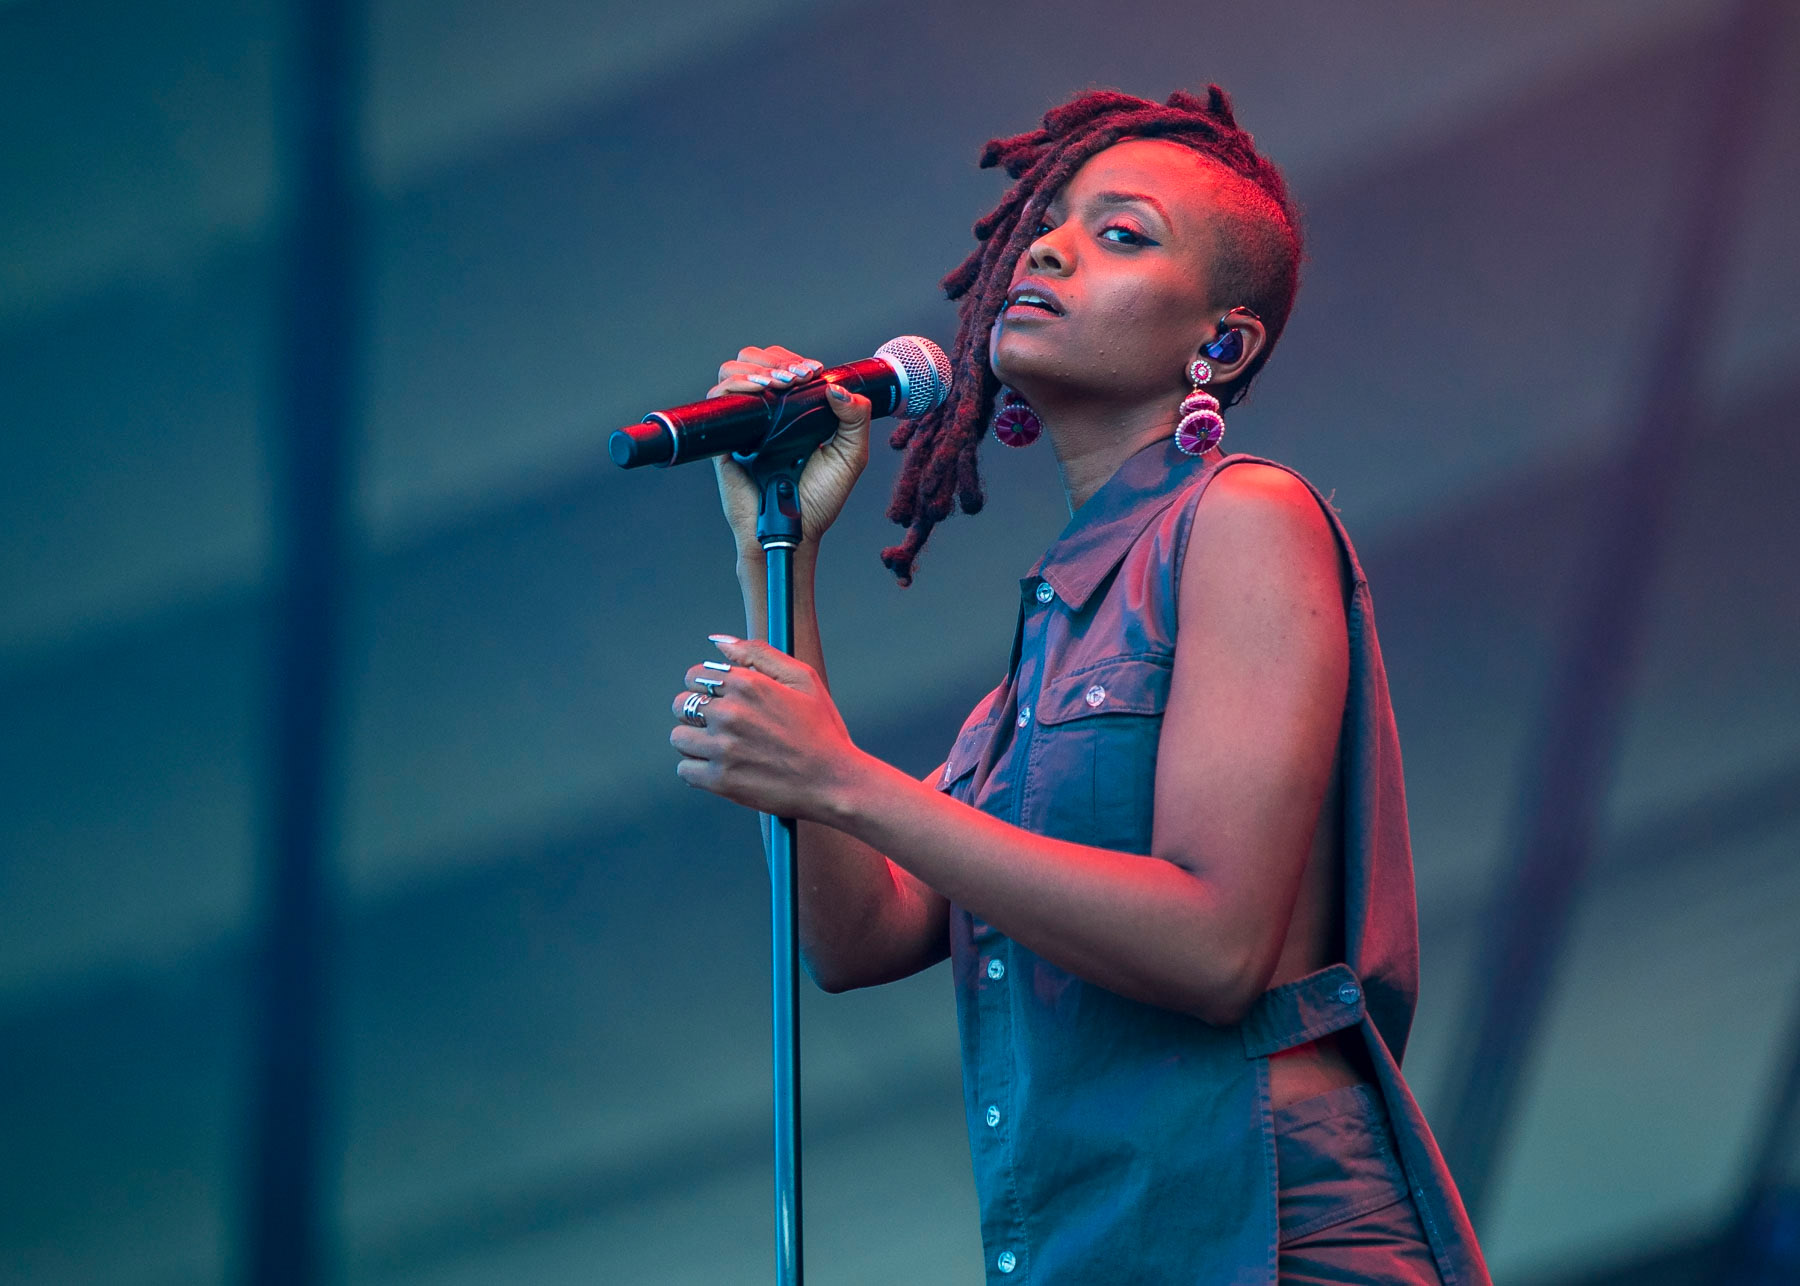 QUEBEC CITY, QC - JULY 15:  Kelela performs on July 15, 2017 in Quebec City, Canada.  (Photo by Scott Legato/Getty Images)